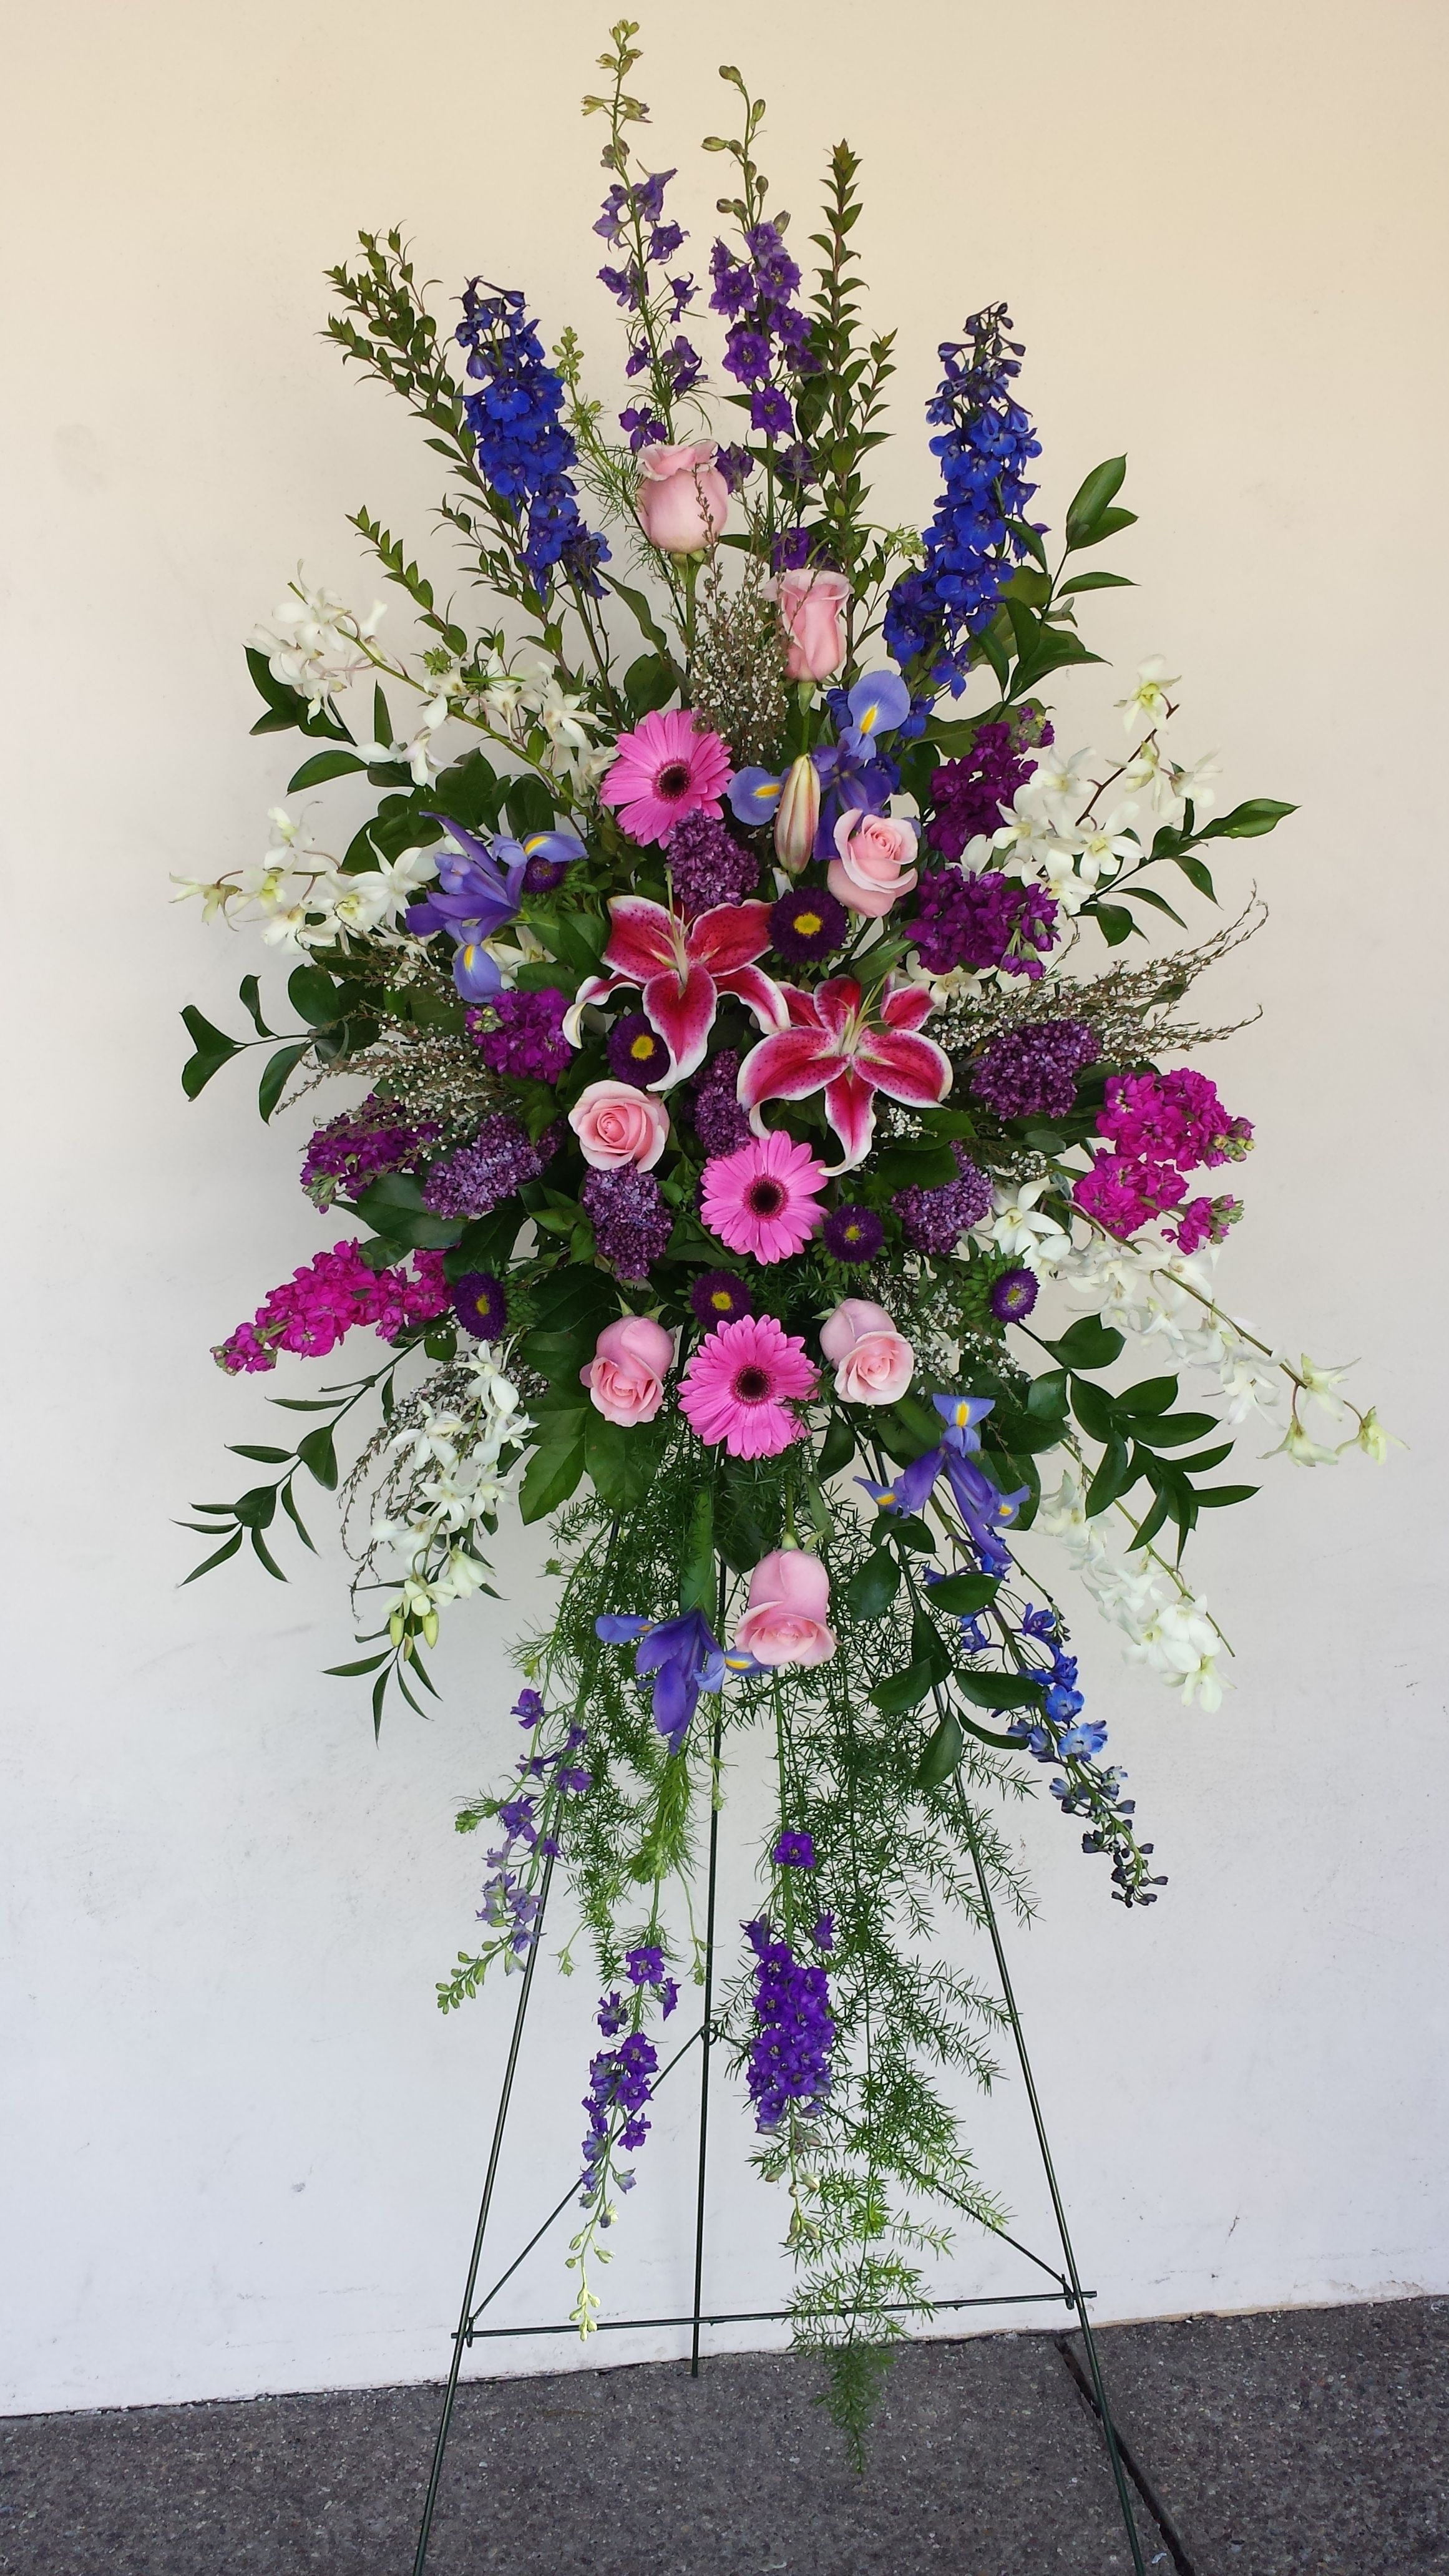 Standing funeral spray of stargazer lilies blue delphinium purple standing funeral spray of stargazer lilies blue delphinium purple larkspur pink gerbera daisies pink roses stock lilac iris and white hawaiian izmirmasajfo